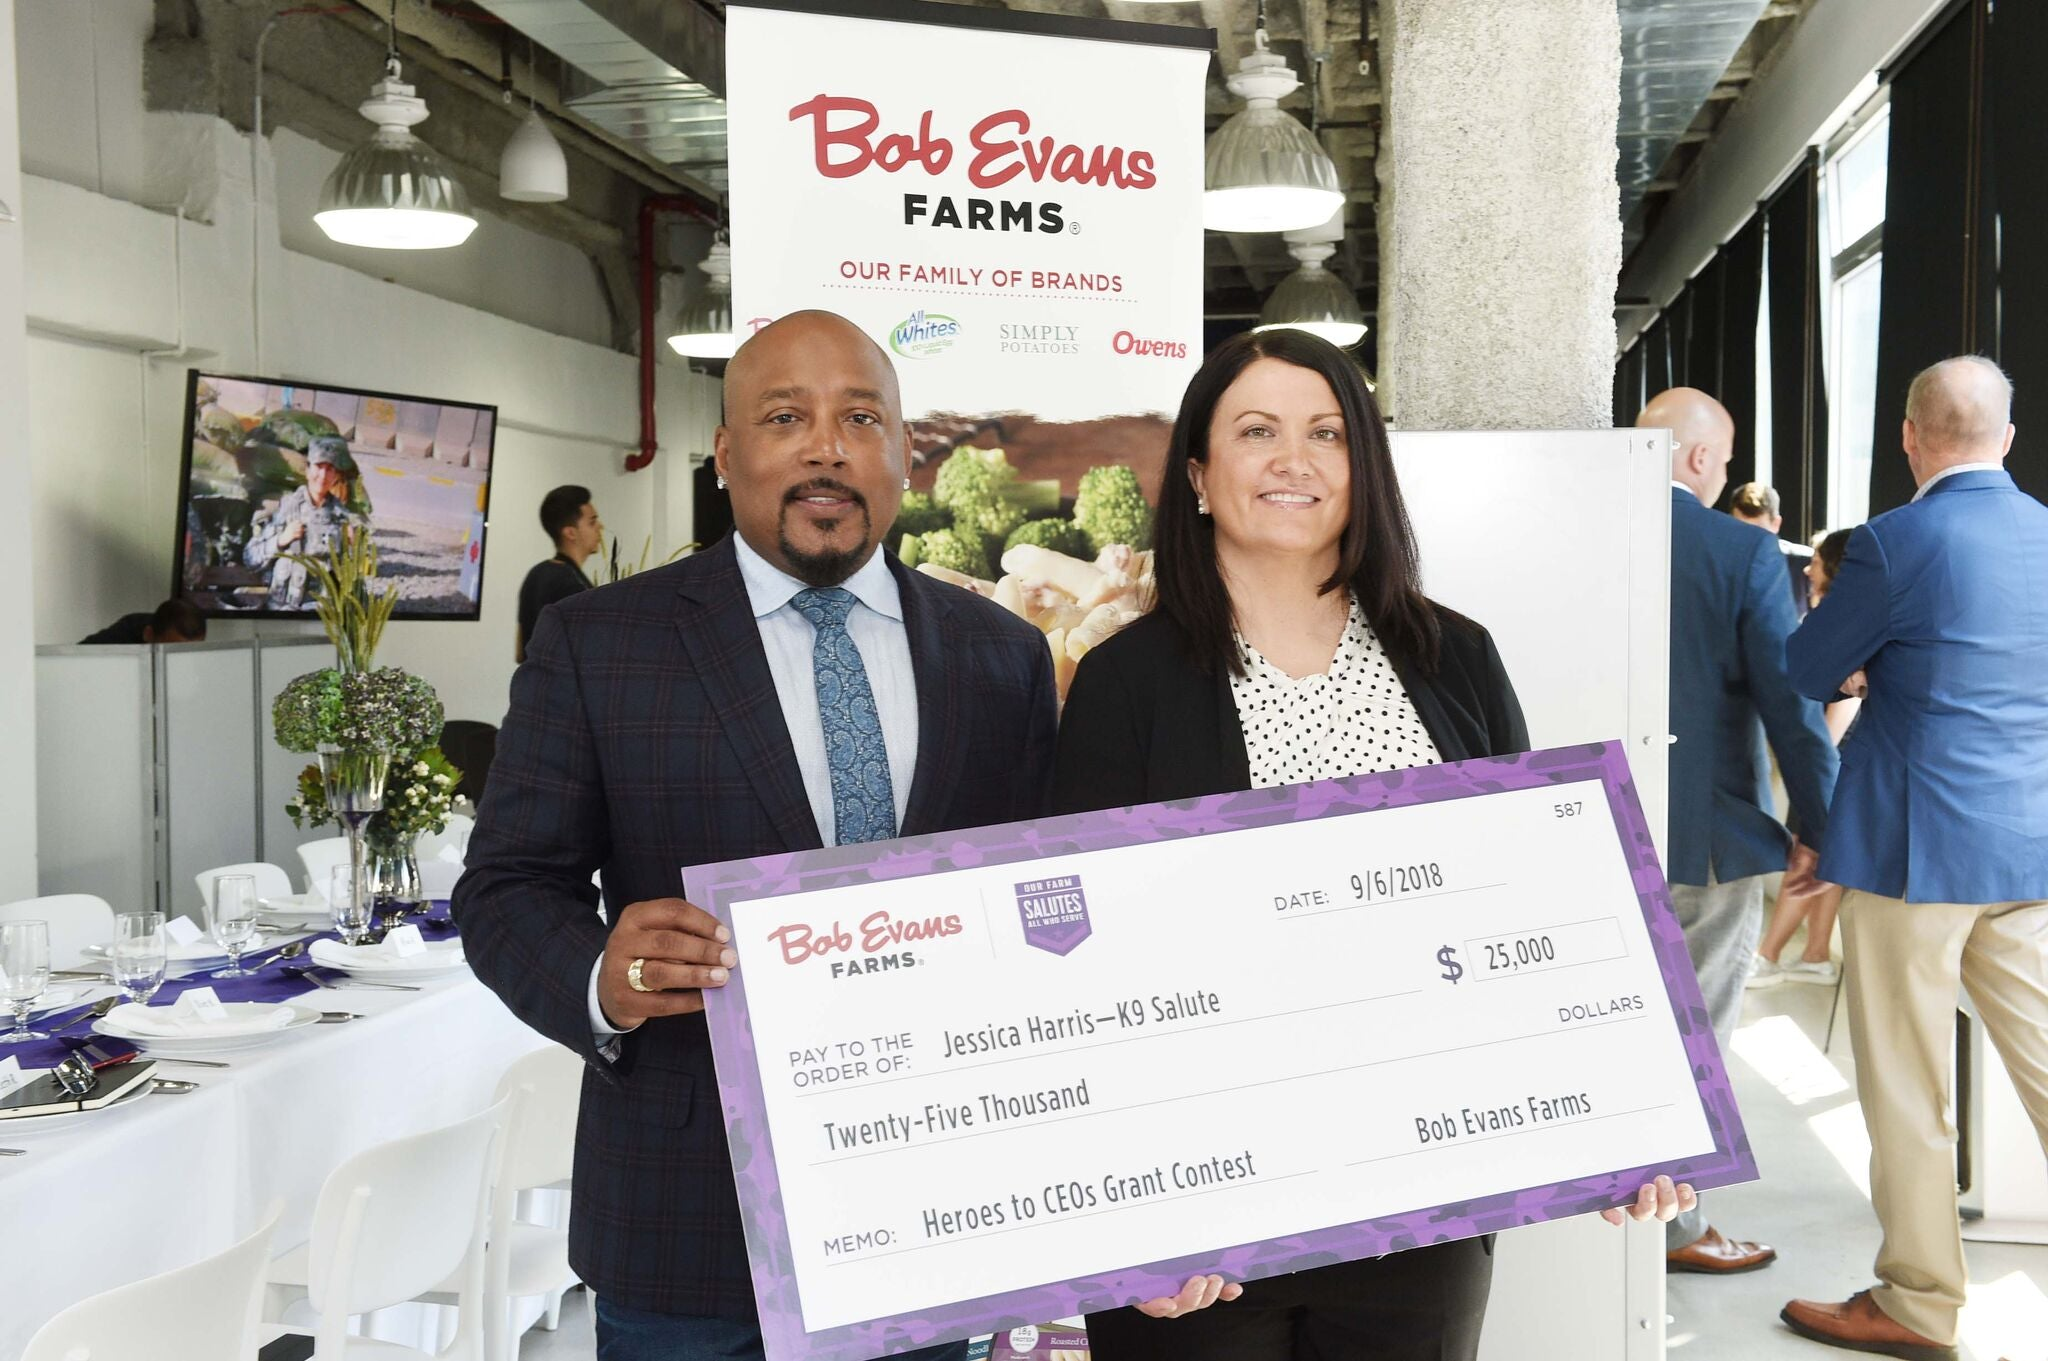 K9 Salute was selected as a 2018 winner of the Bob Evans Farms Heroes to CEOs contest